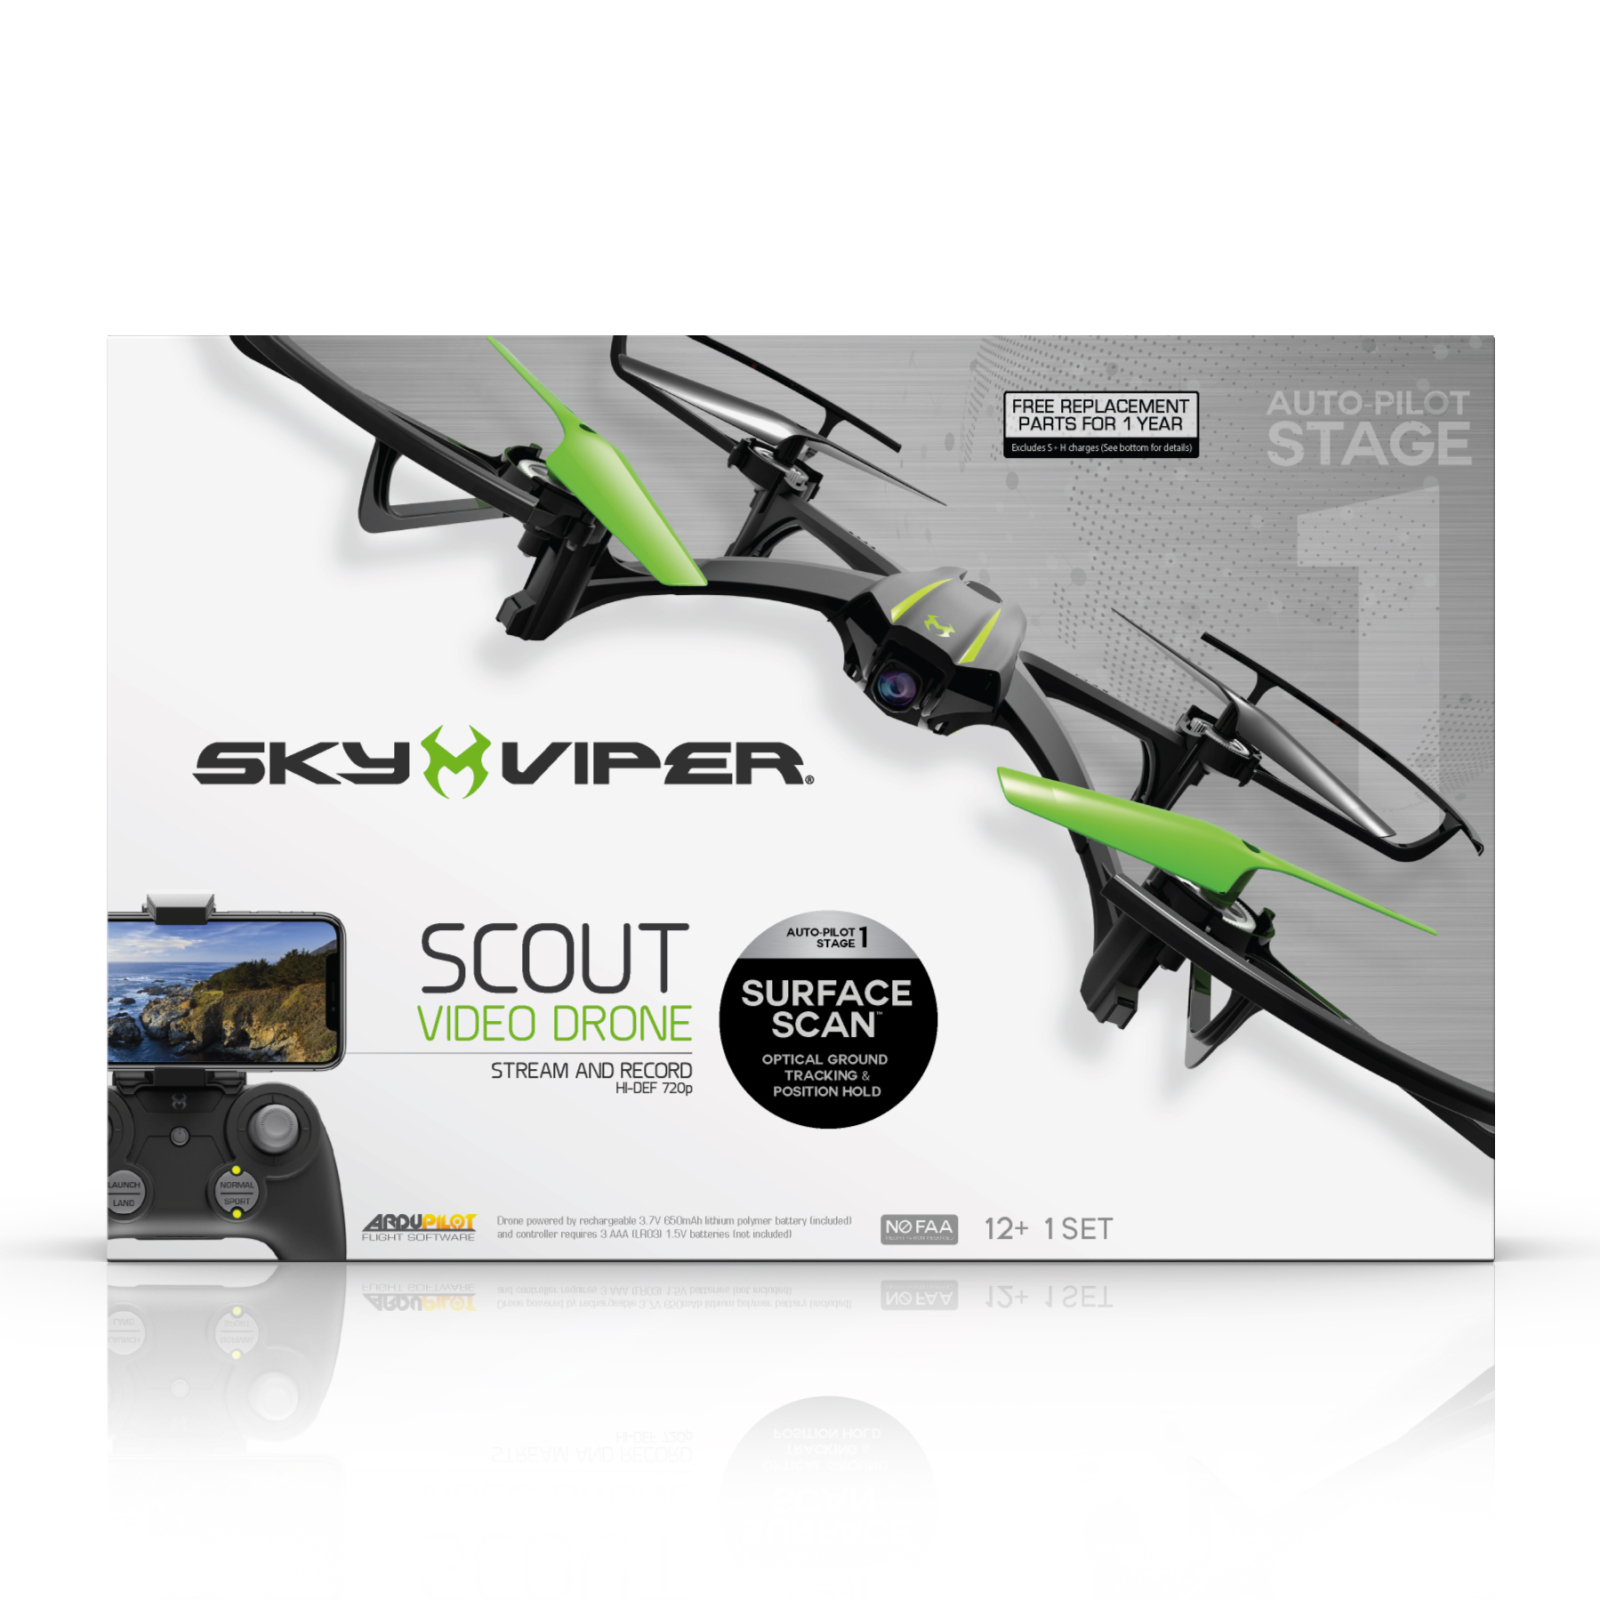 Sky viper scout streaming drone with surface scan